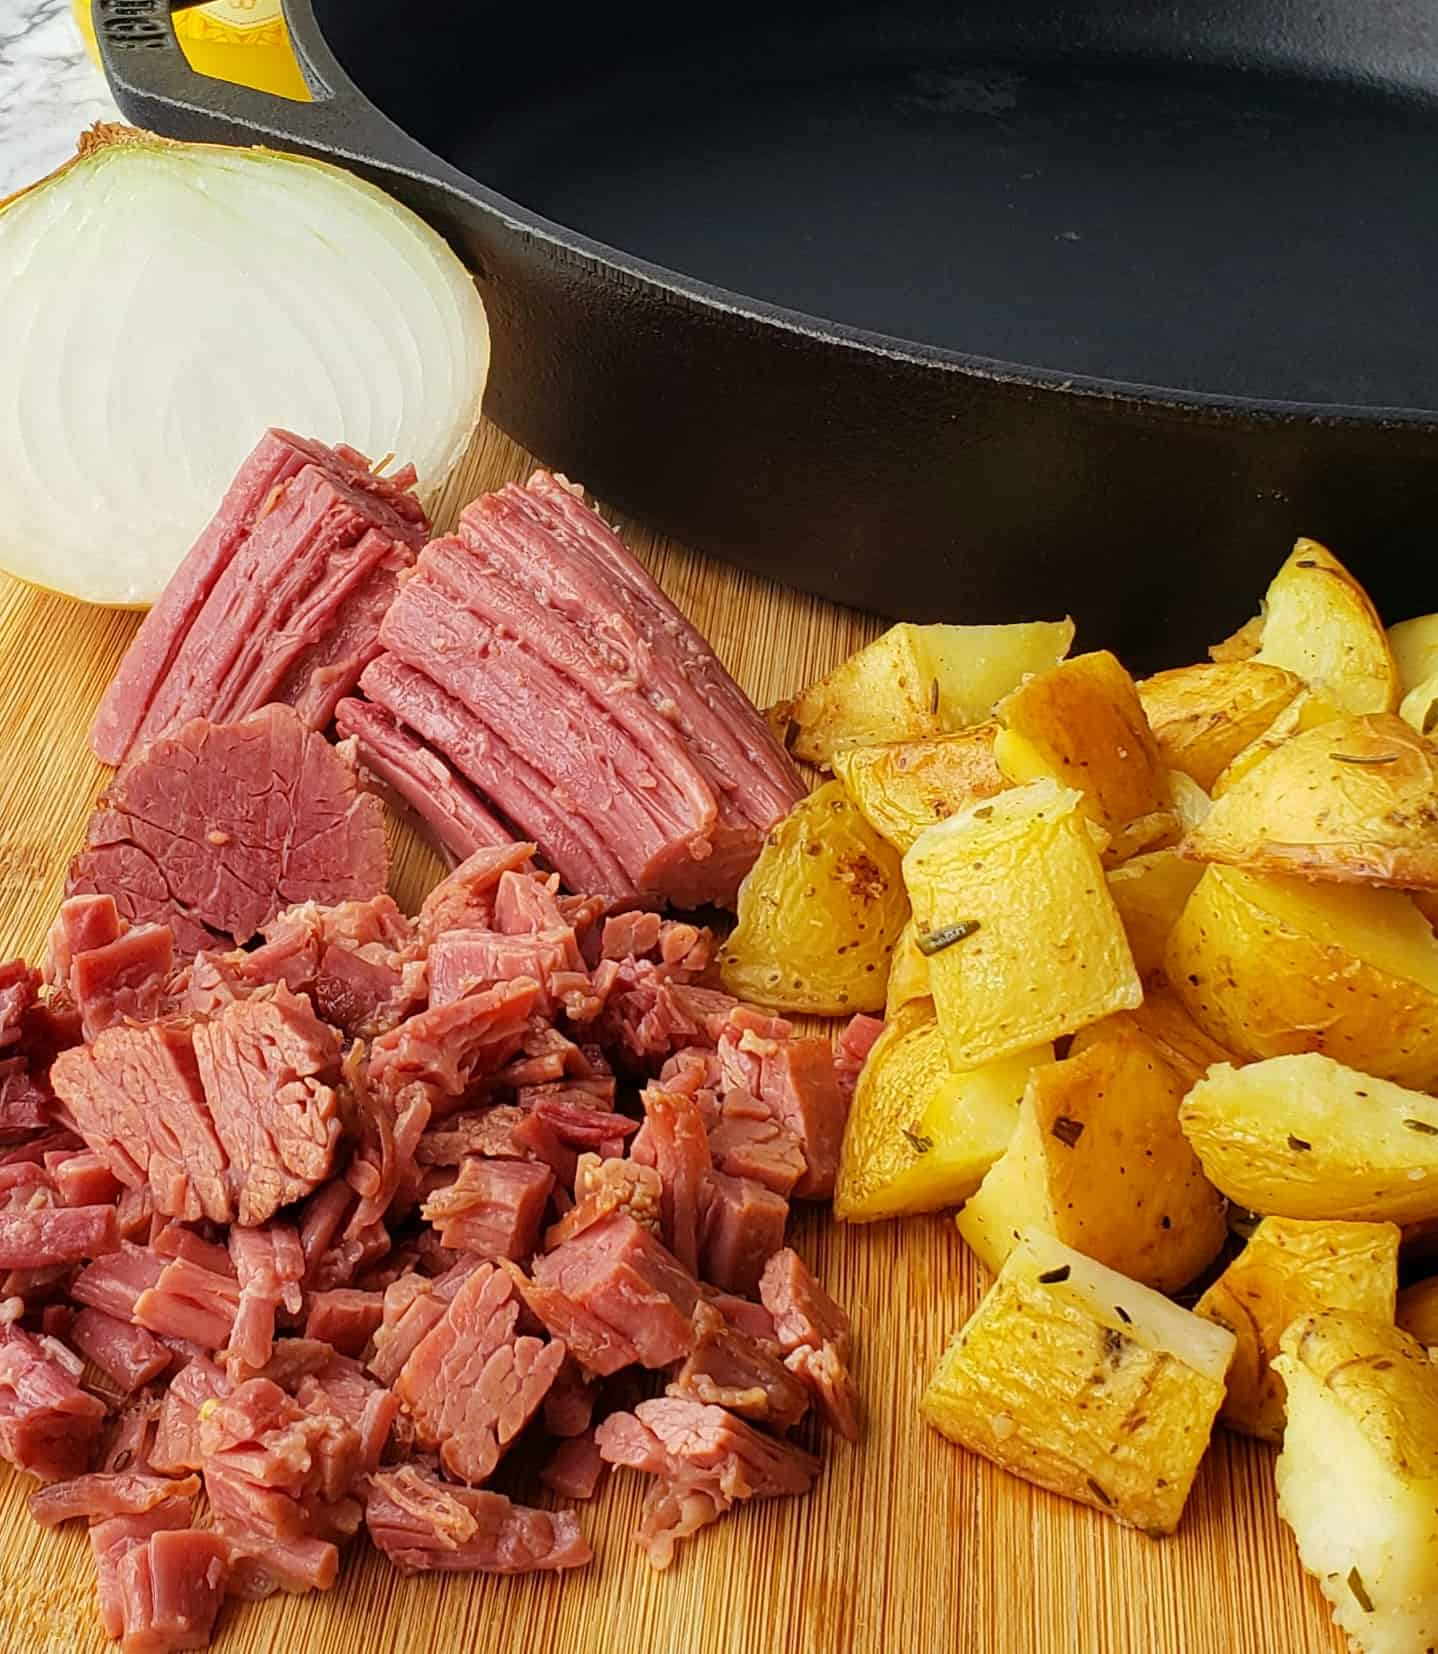 chopped corned beef, half an onion and roasted potatoes next to a cast iron skillet